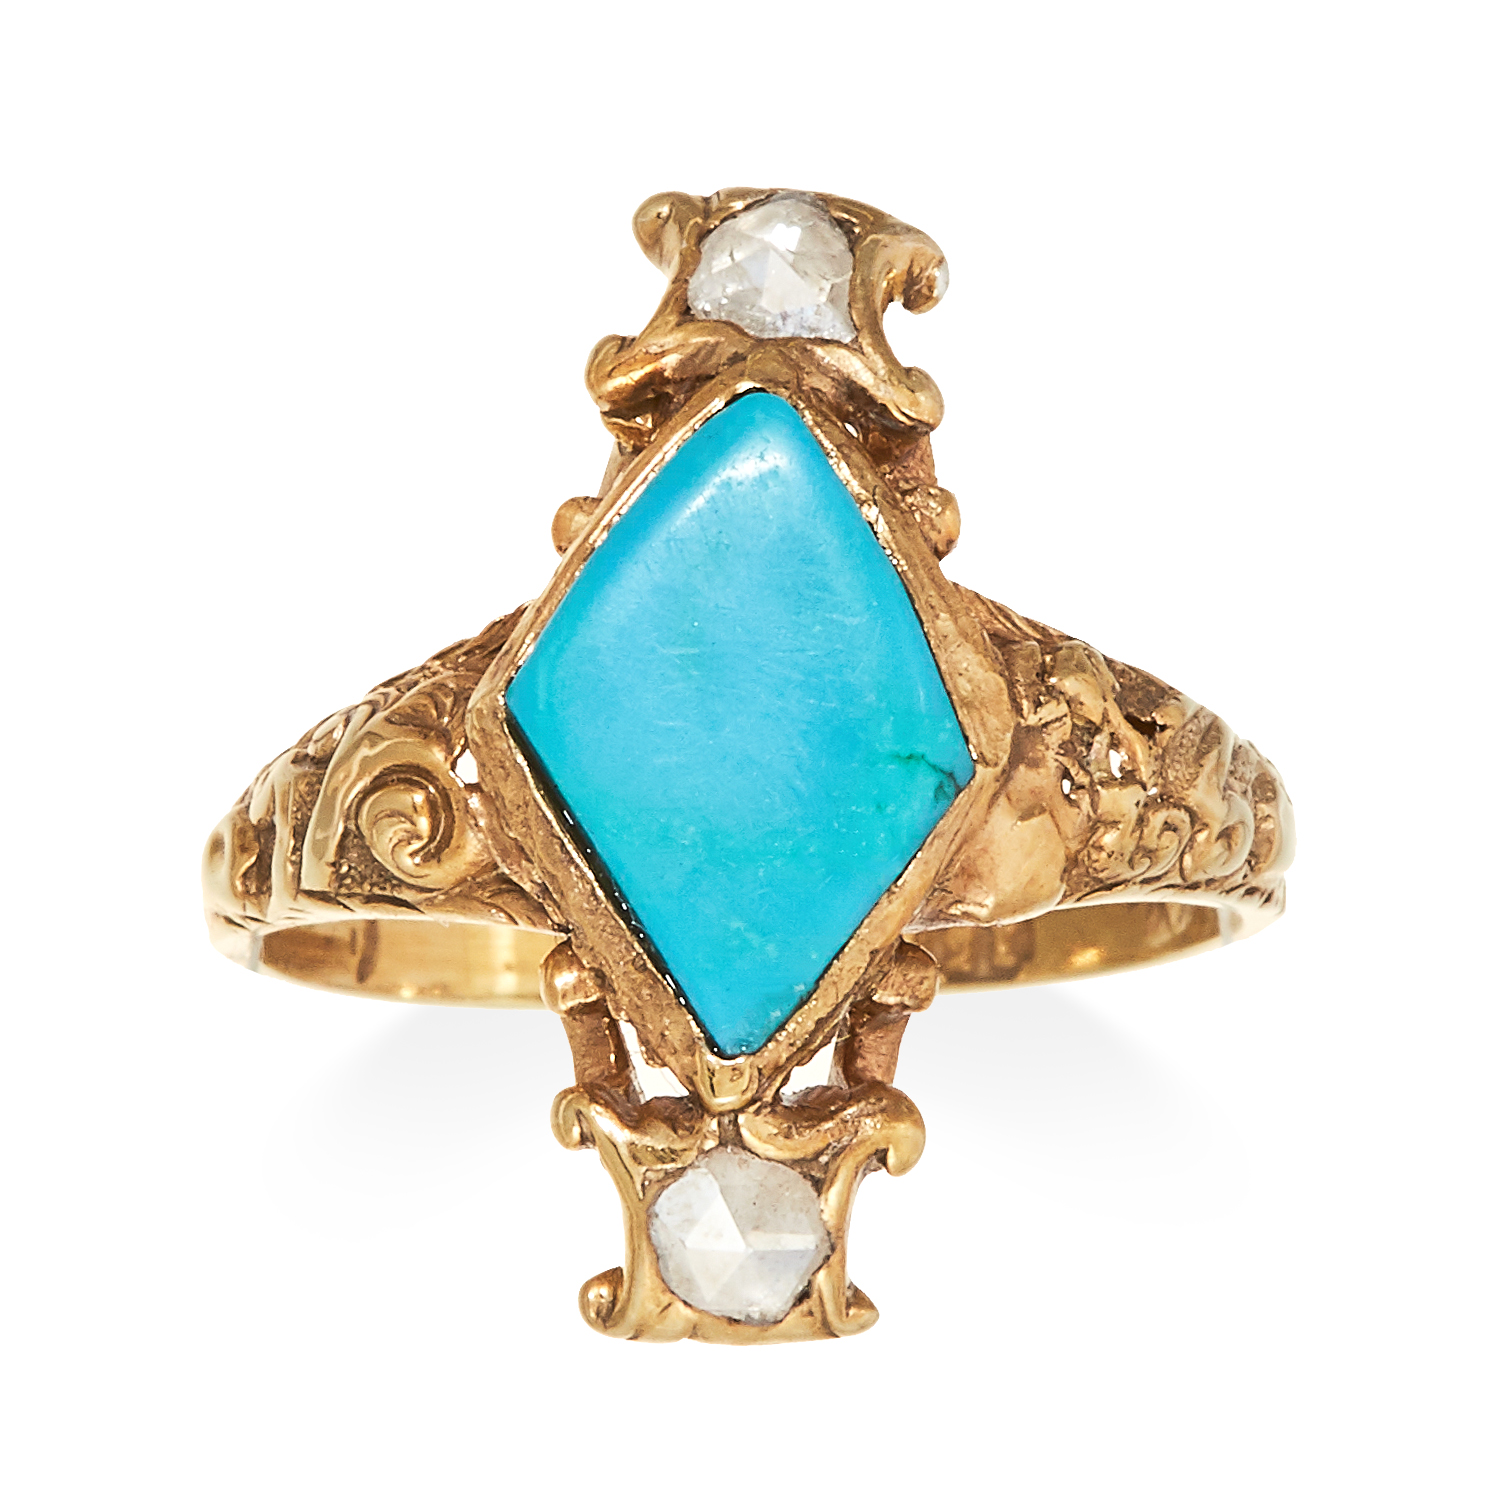 Los 40 - AN ANTIQUE TURQUOISE AND DIAMOND RING in 15 carat yellow gold, set with a central cabochon turquoise